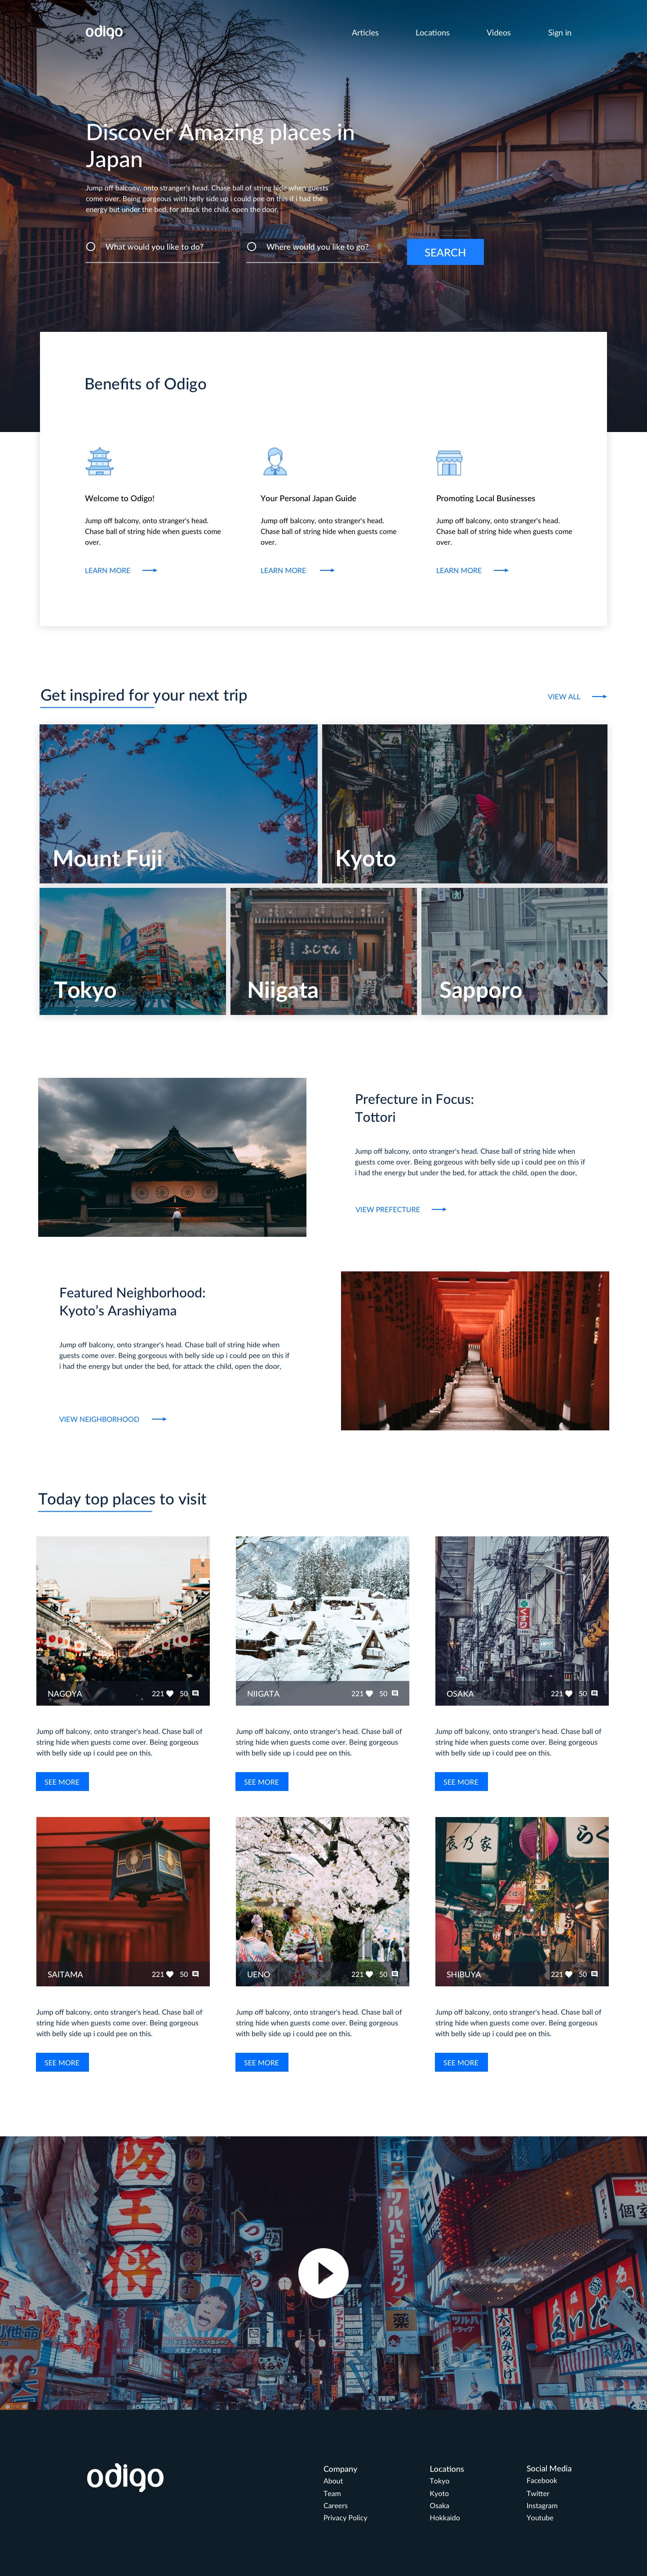 Travel Landing Page - Clean landing page design by Jacob Voyles